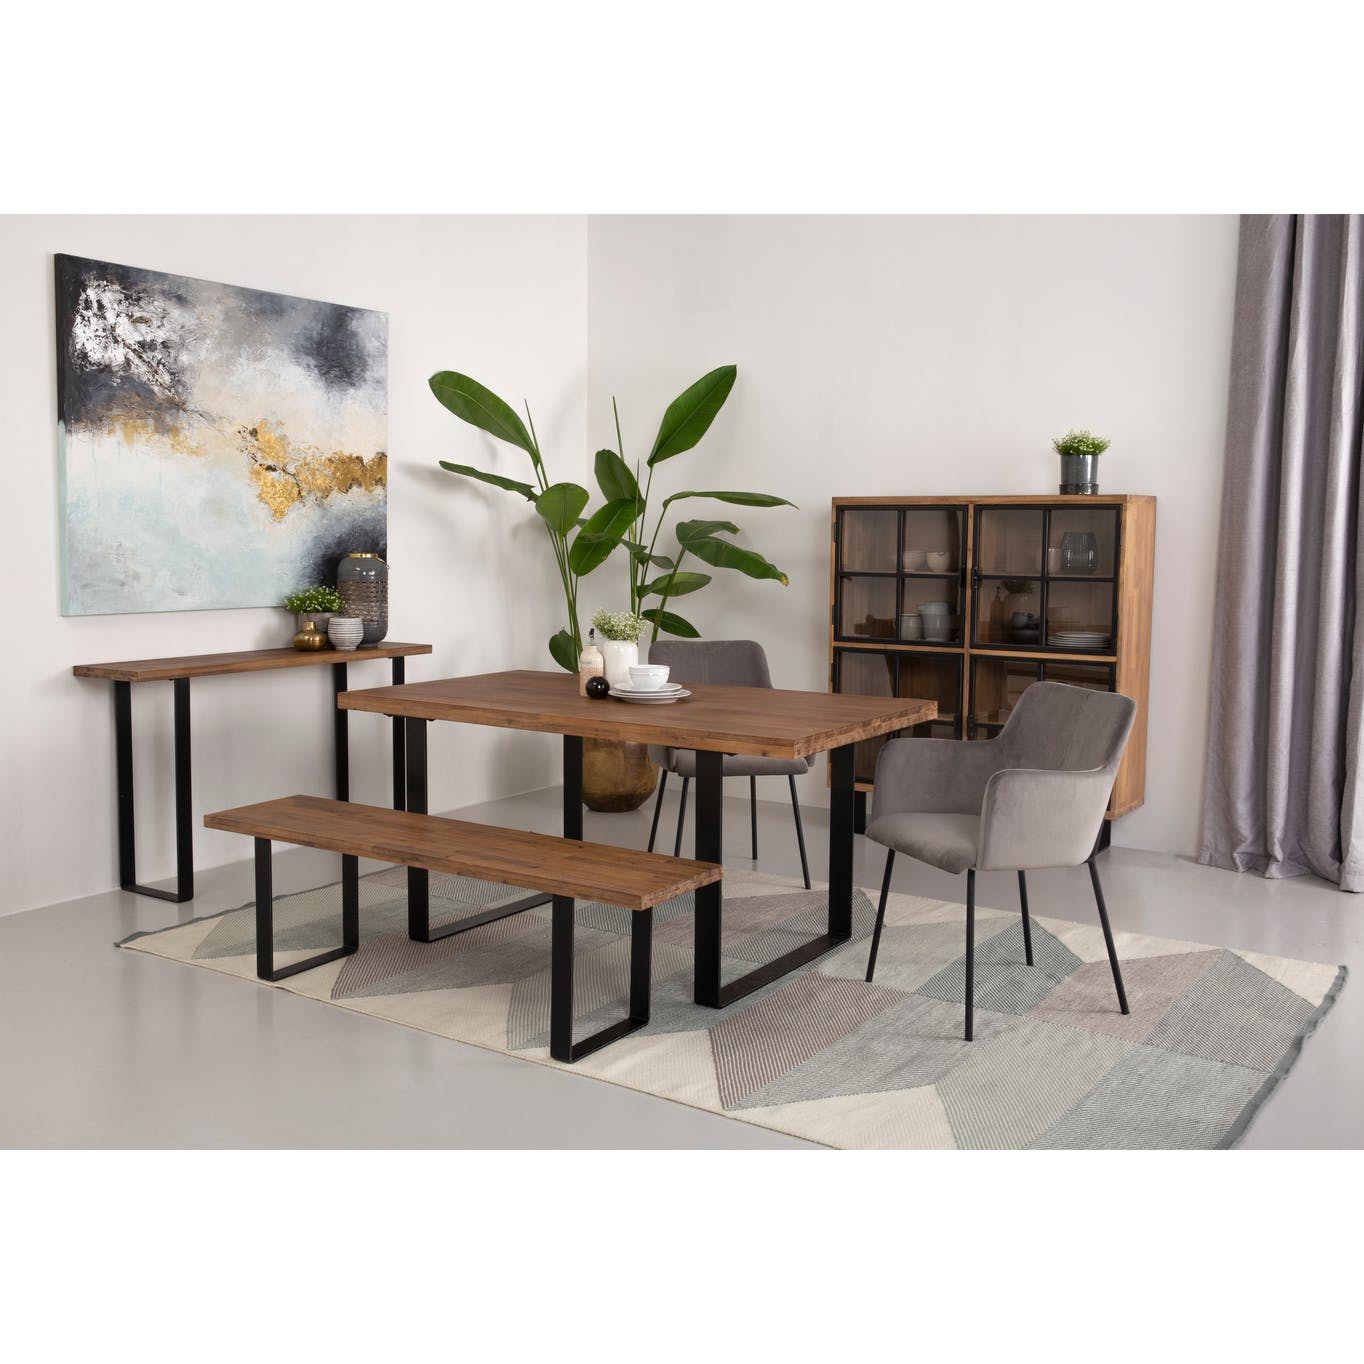 Wooden dining table placed above a geometric rug